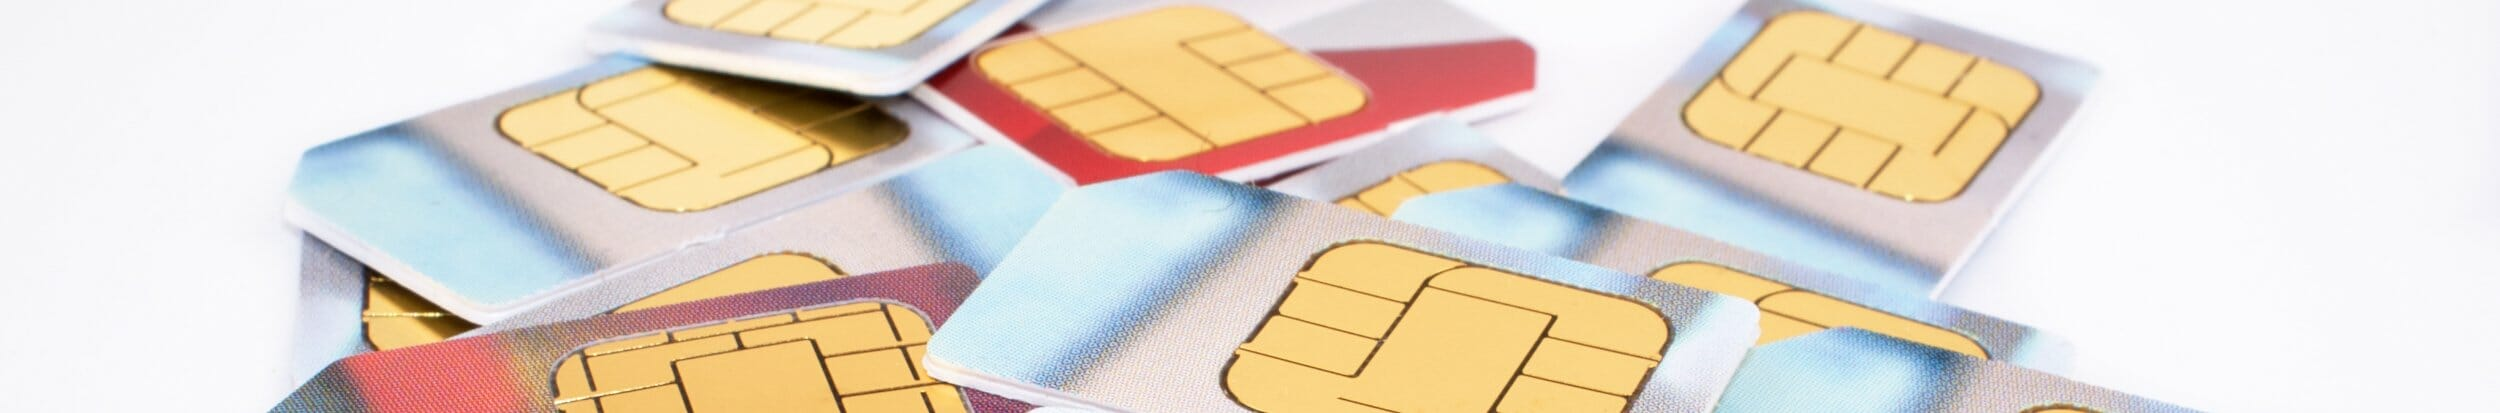 Stack of free mobile SIM cards